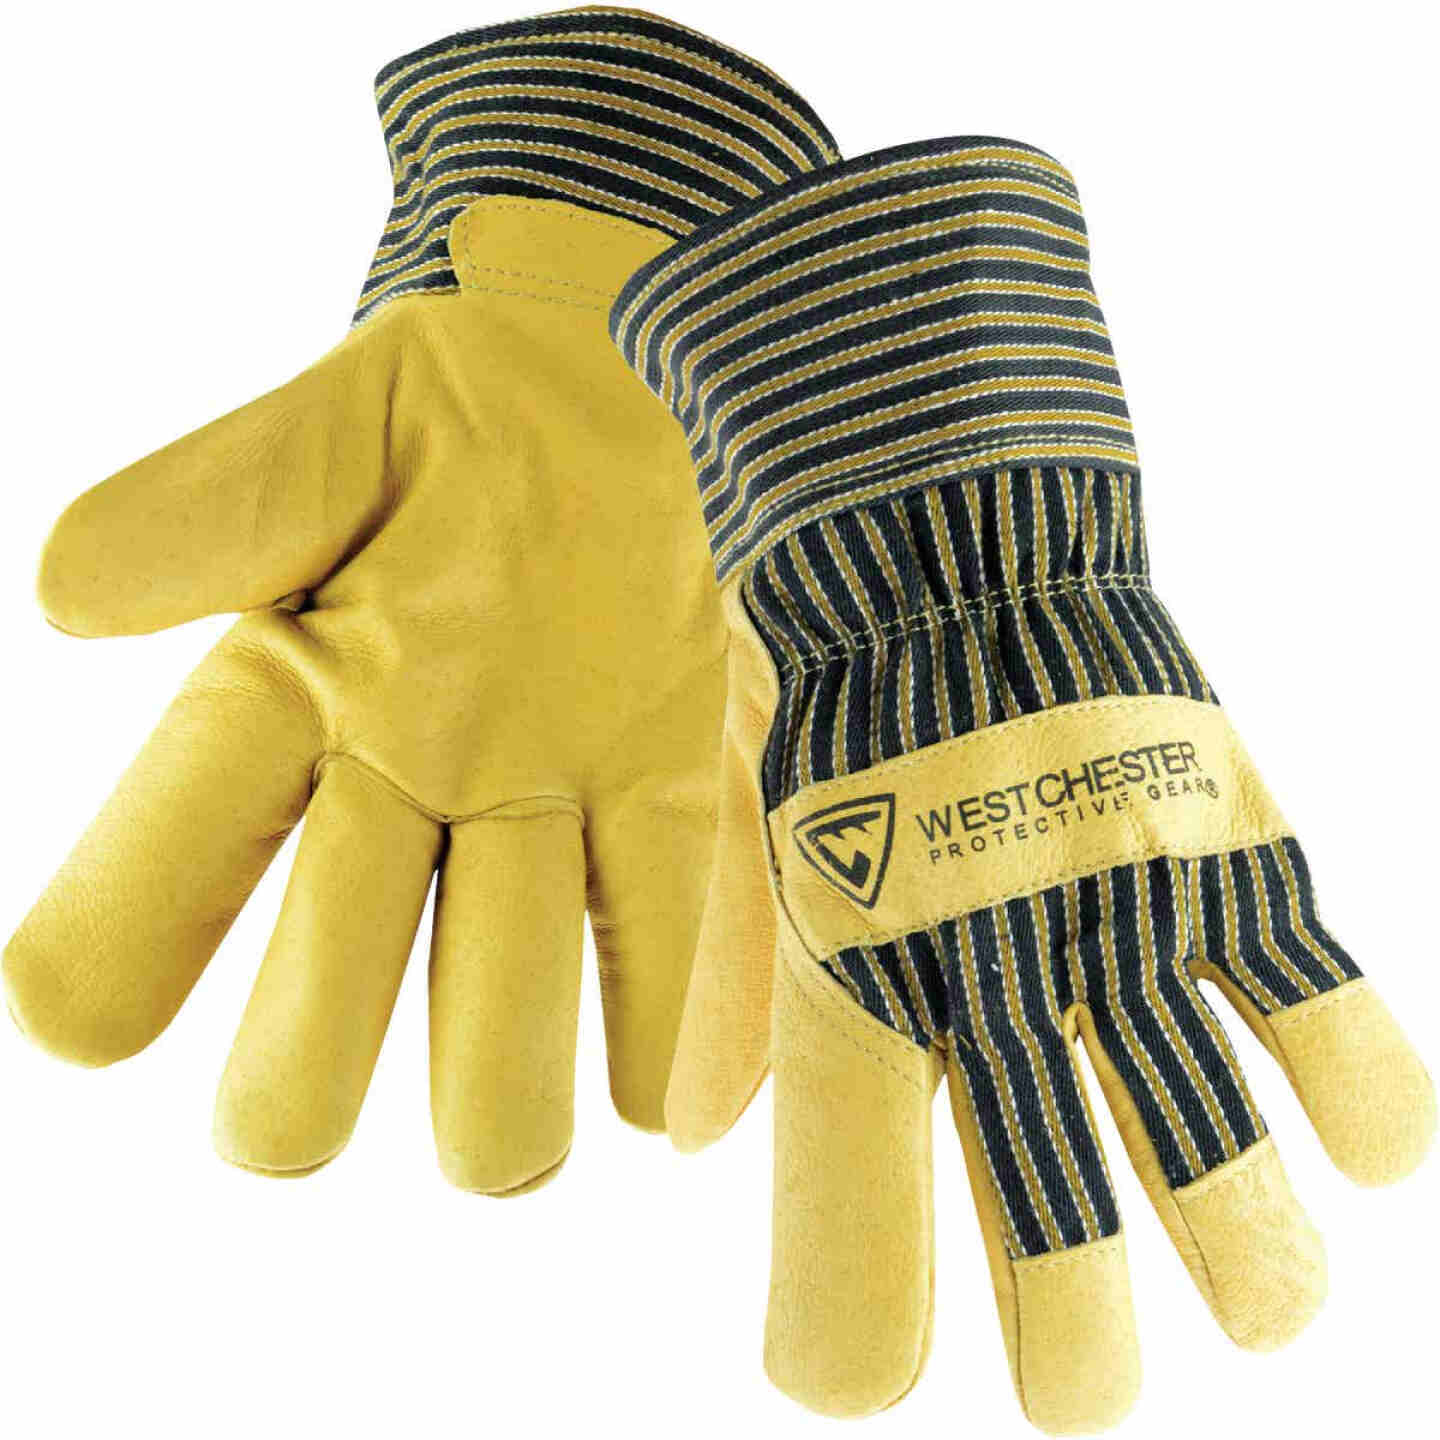 West Chester Protective Gear Men's XL Grain Pigskin Leather Work Glove Image 1